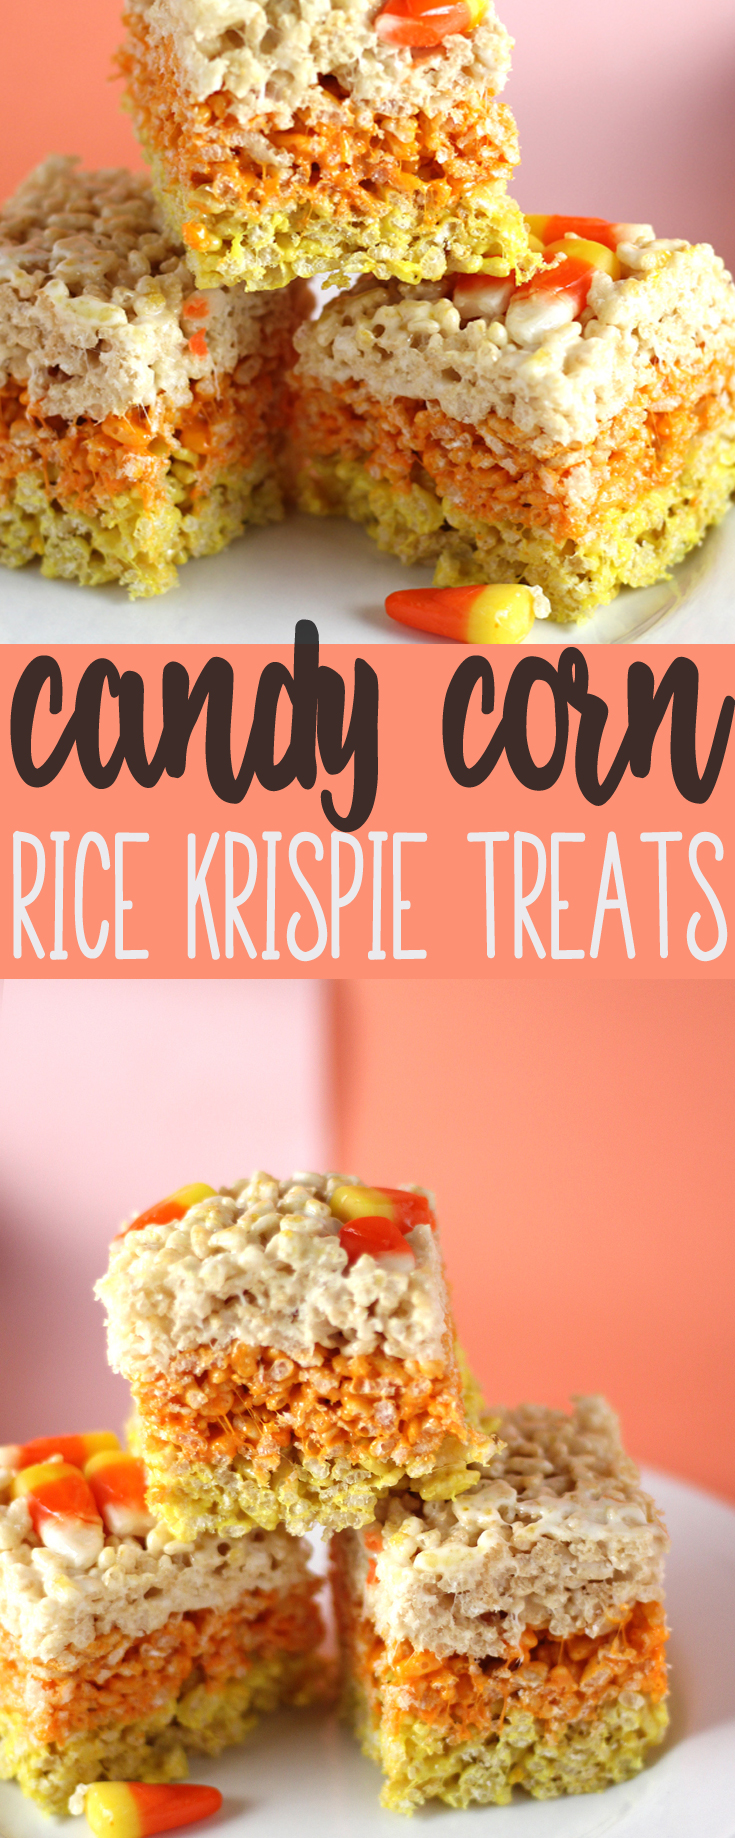 Two things in this world bring out the kid in me. Rice Krispie Treats + Candy Corn. Two classic treats together in a deliciously sweet Halloween treat. #halloween